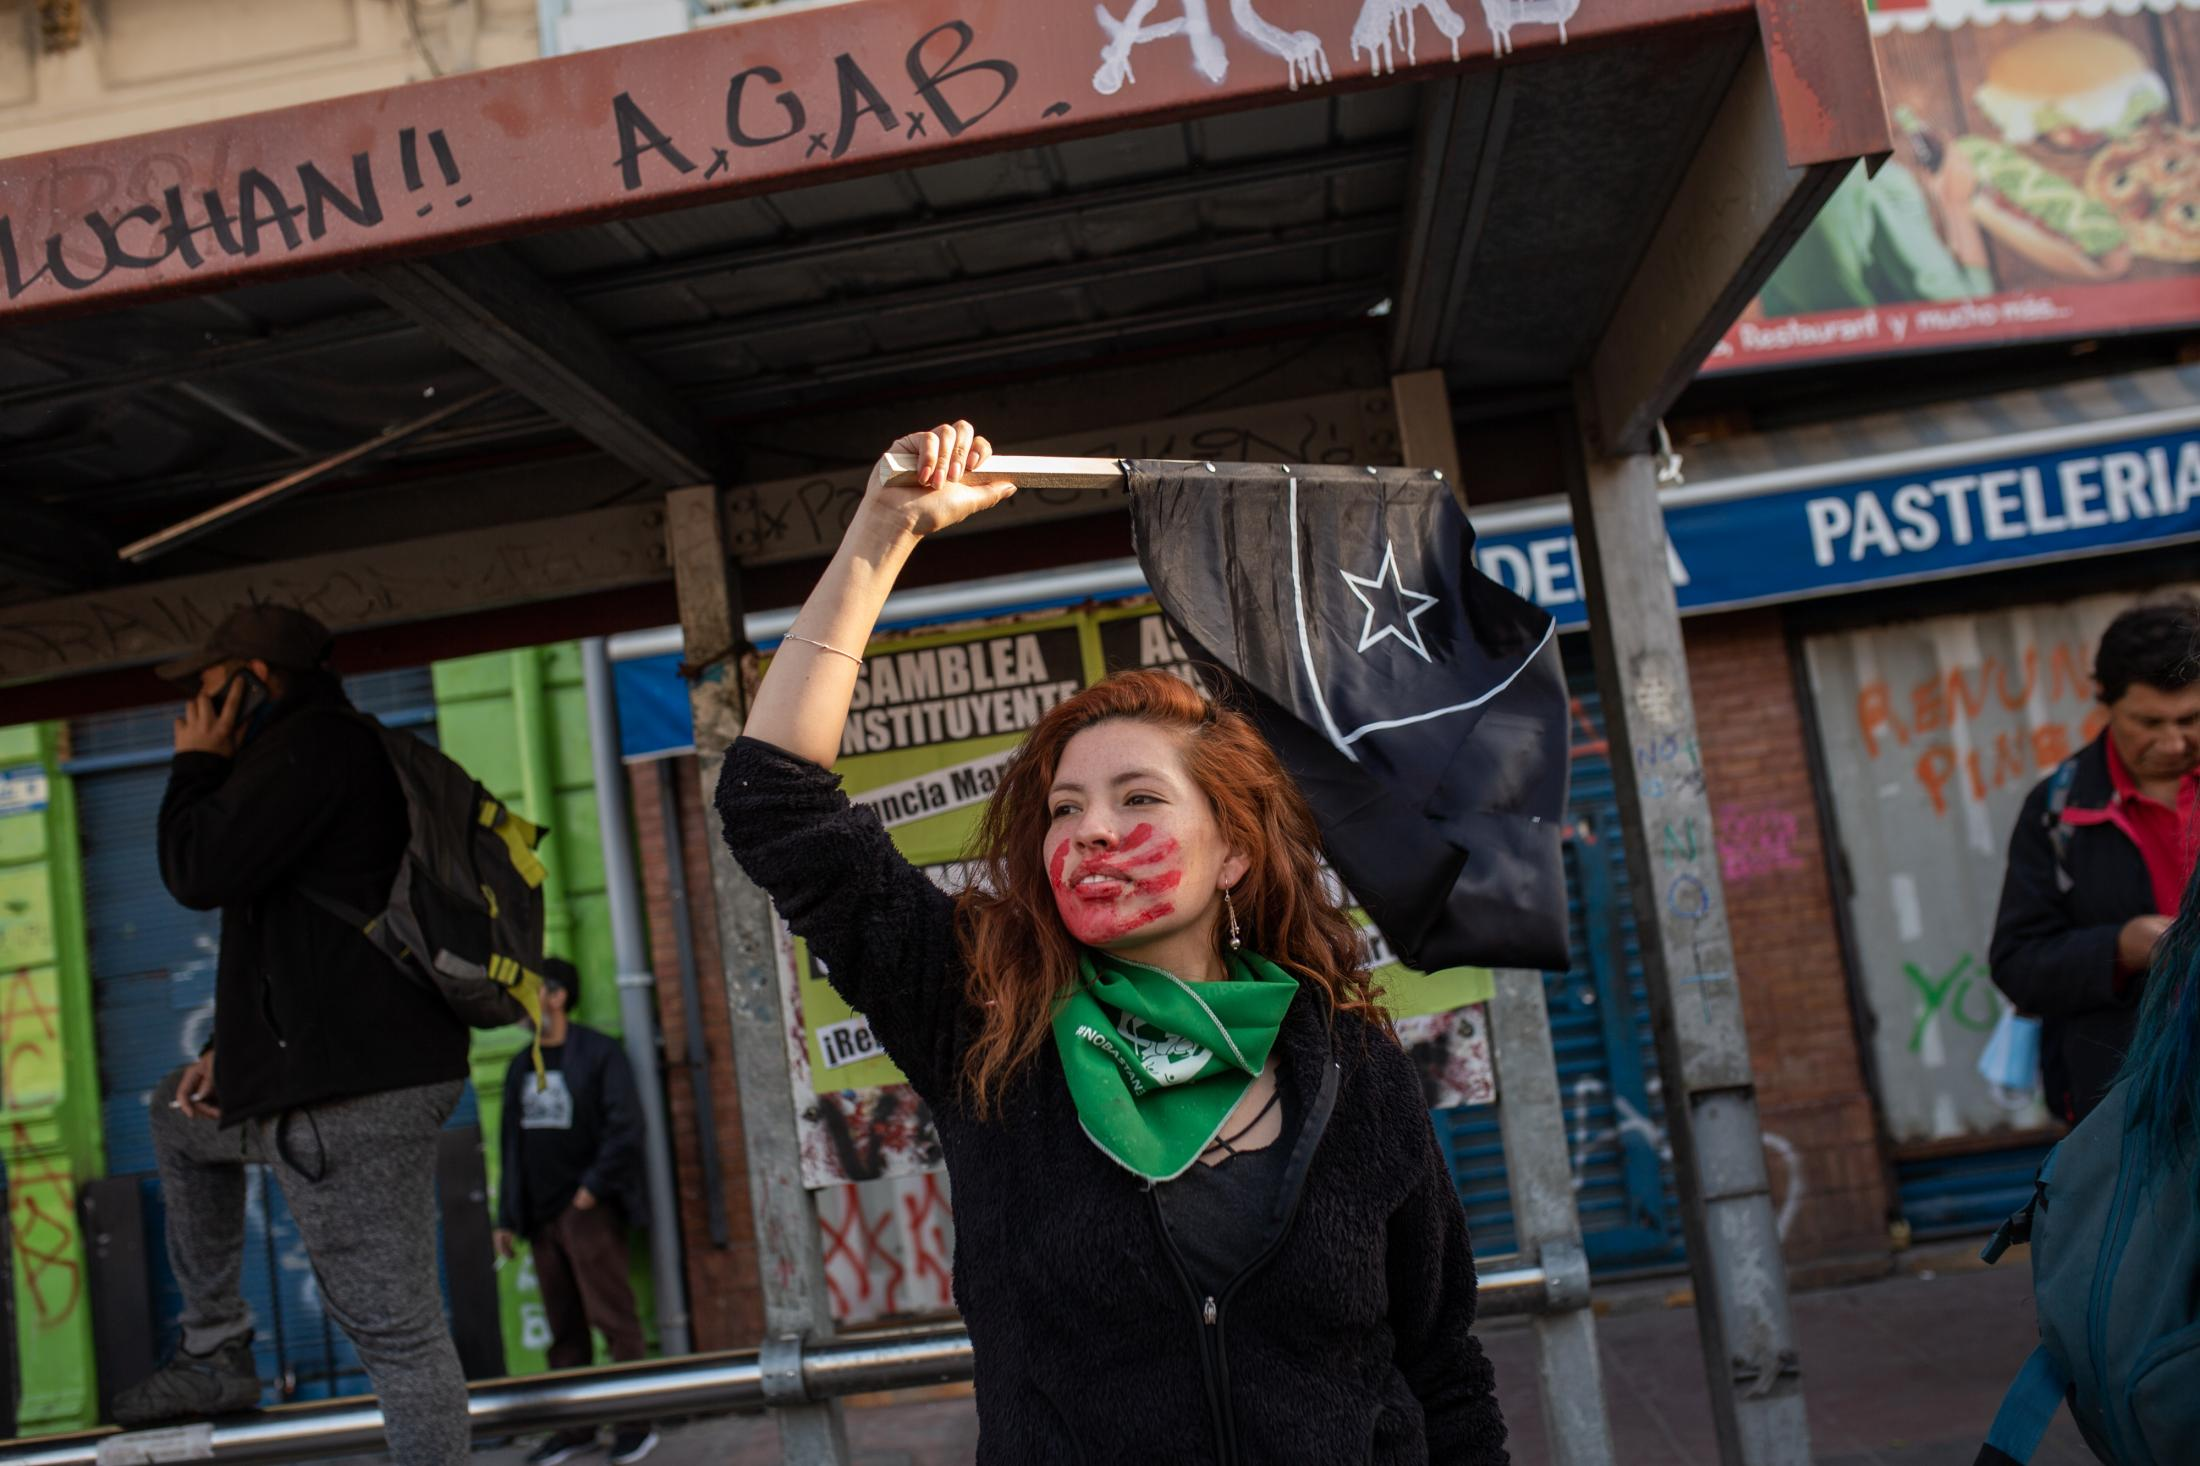 November 25, 2019. A feminist protester waves a black flag during a march for the International Day for the Elimination of Violence against Women, in the context of the social unrest. The Chilean black flag became a symbol of the protests to symbolize mourning for the human rights violations that occurred in the country during the social outbreak. Valparaíso, Chile